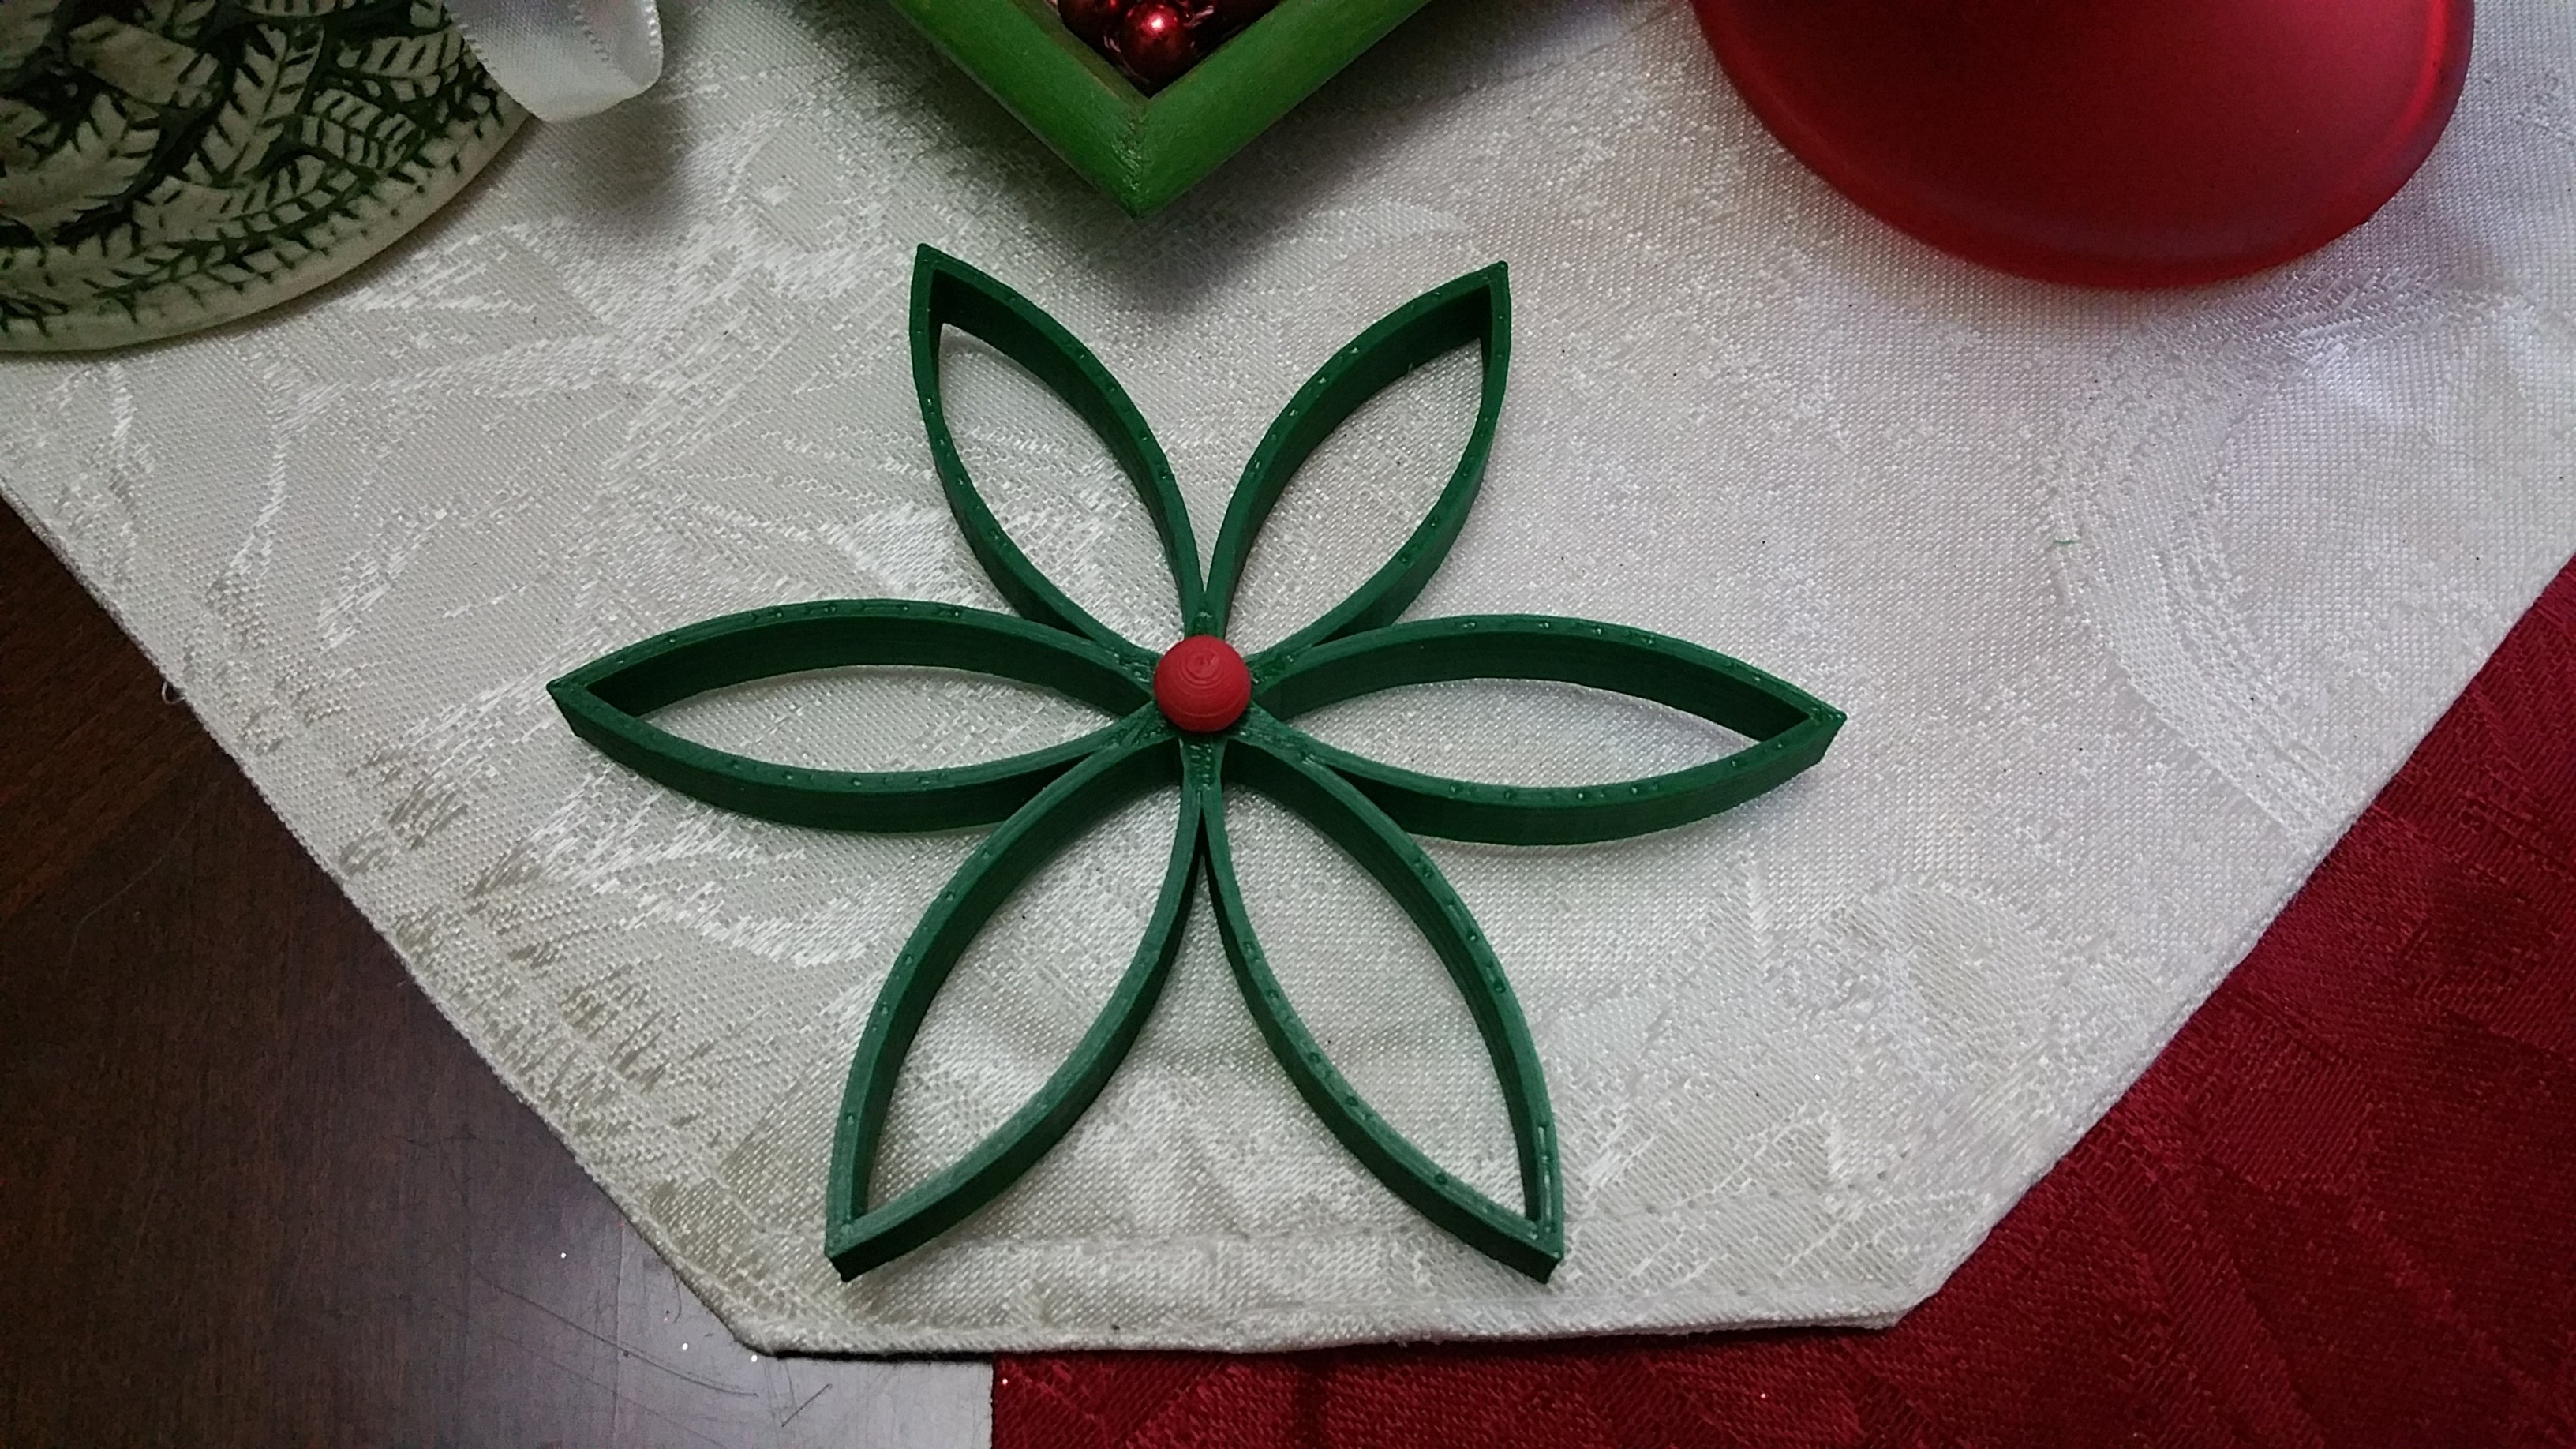 20161222_185818.jpg Download free STL file Christmas Flower with Seperated Center Ball • 3D printing model, Endless3D